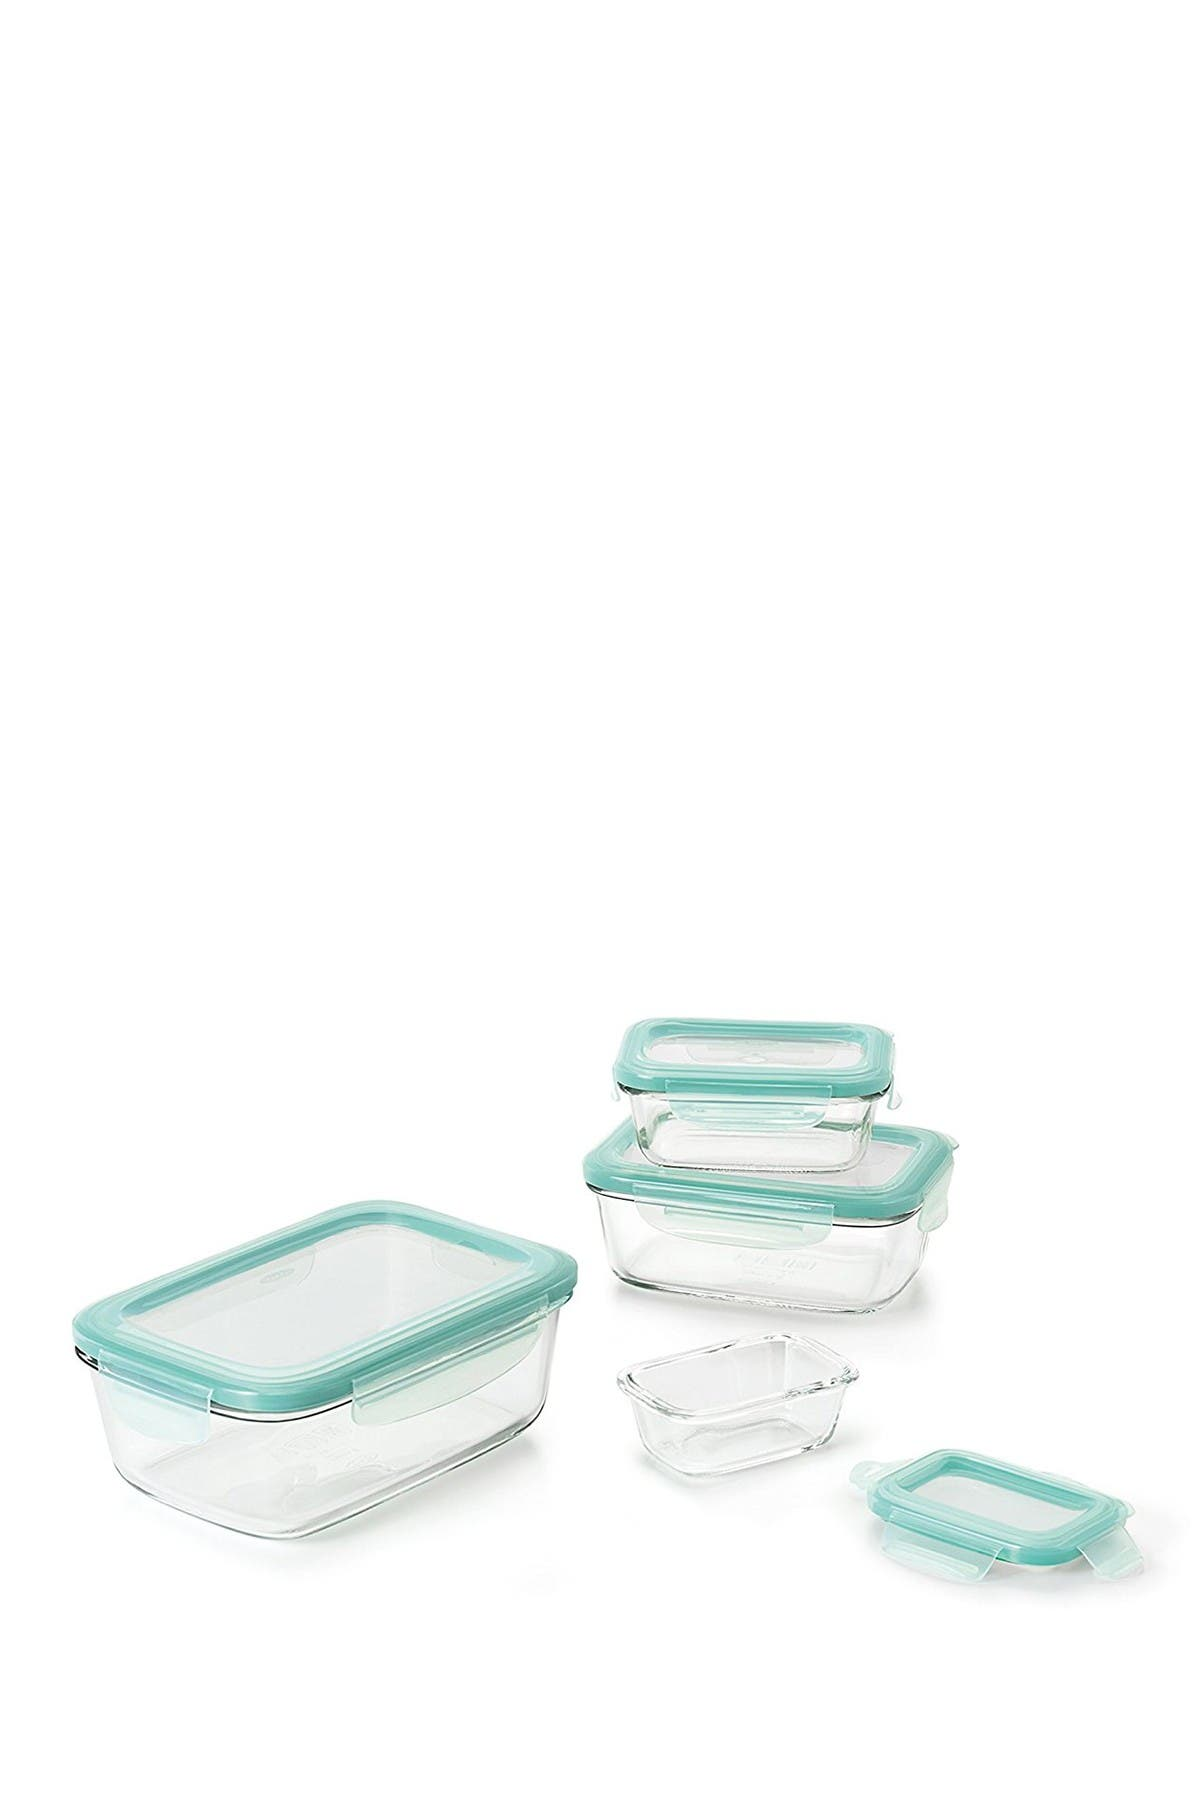 Image of Oxo Good Grips 8-Piece Smart Seal Glass Container Set